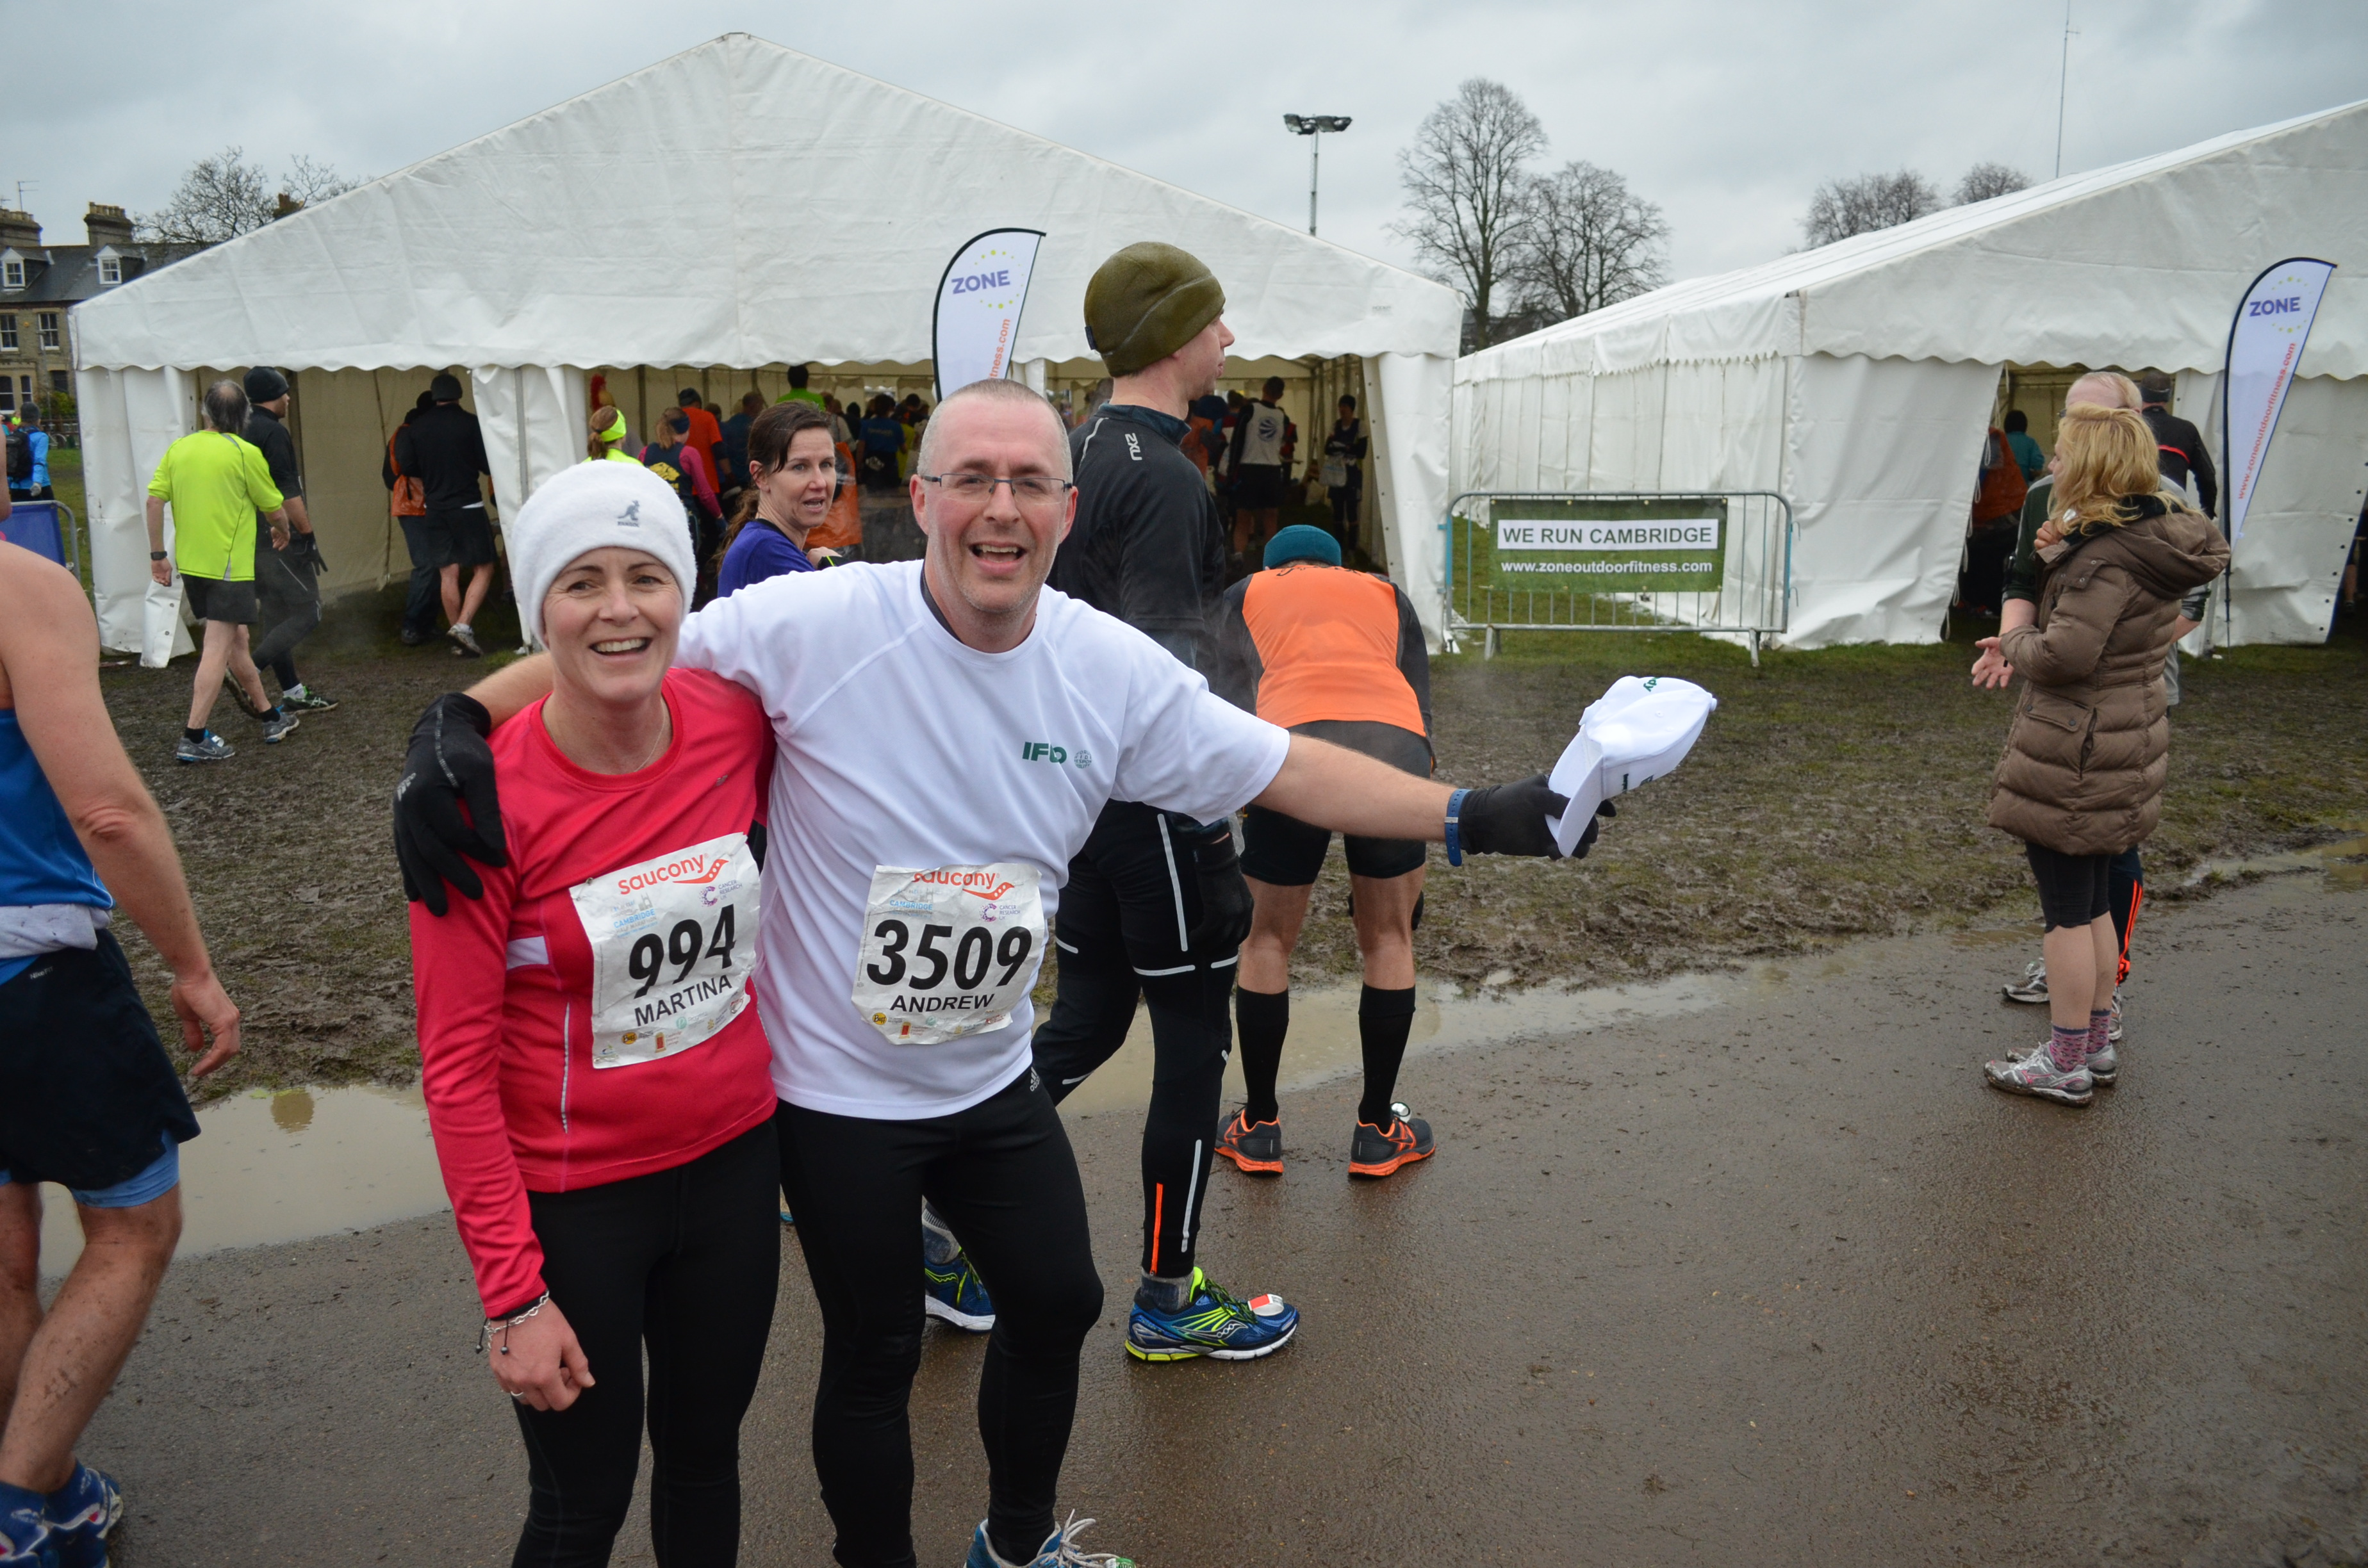 IFCO's Andy Beeching runs the Cambridge half marathon for the benefit of the Tower Hamlets Foodbank